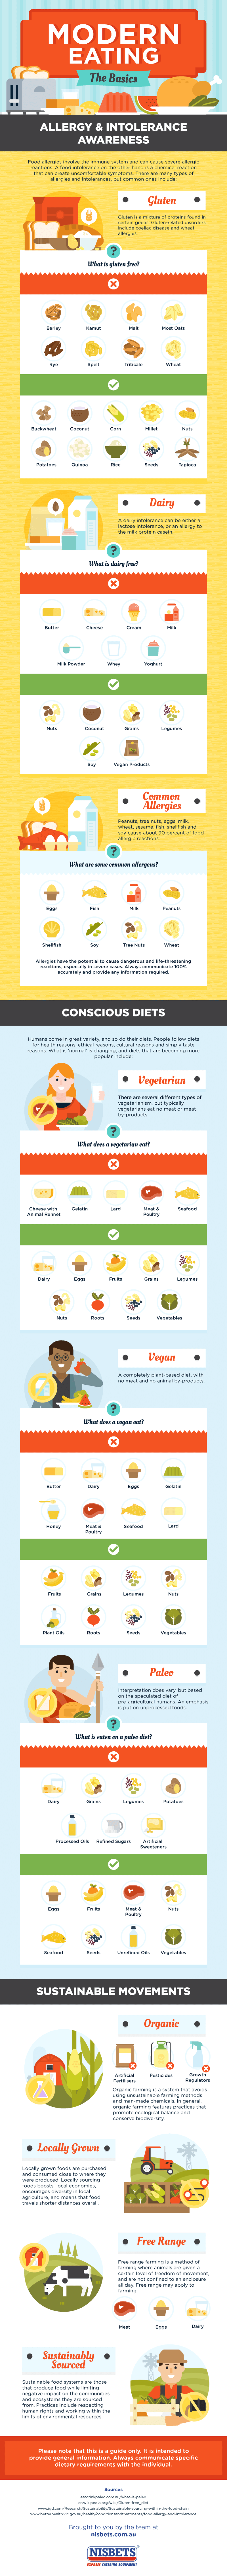 Guide to Modern Eating Infographic